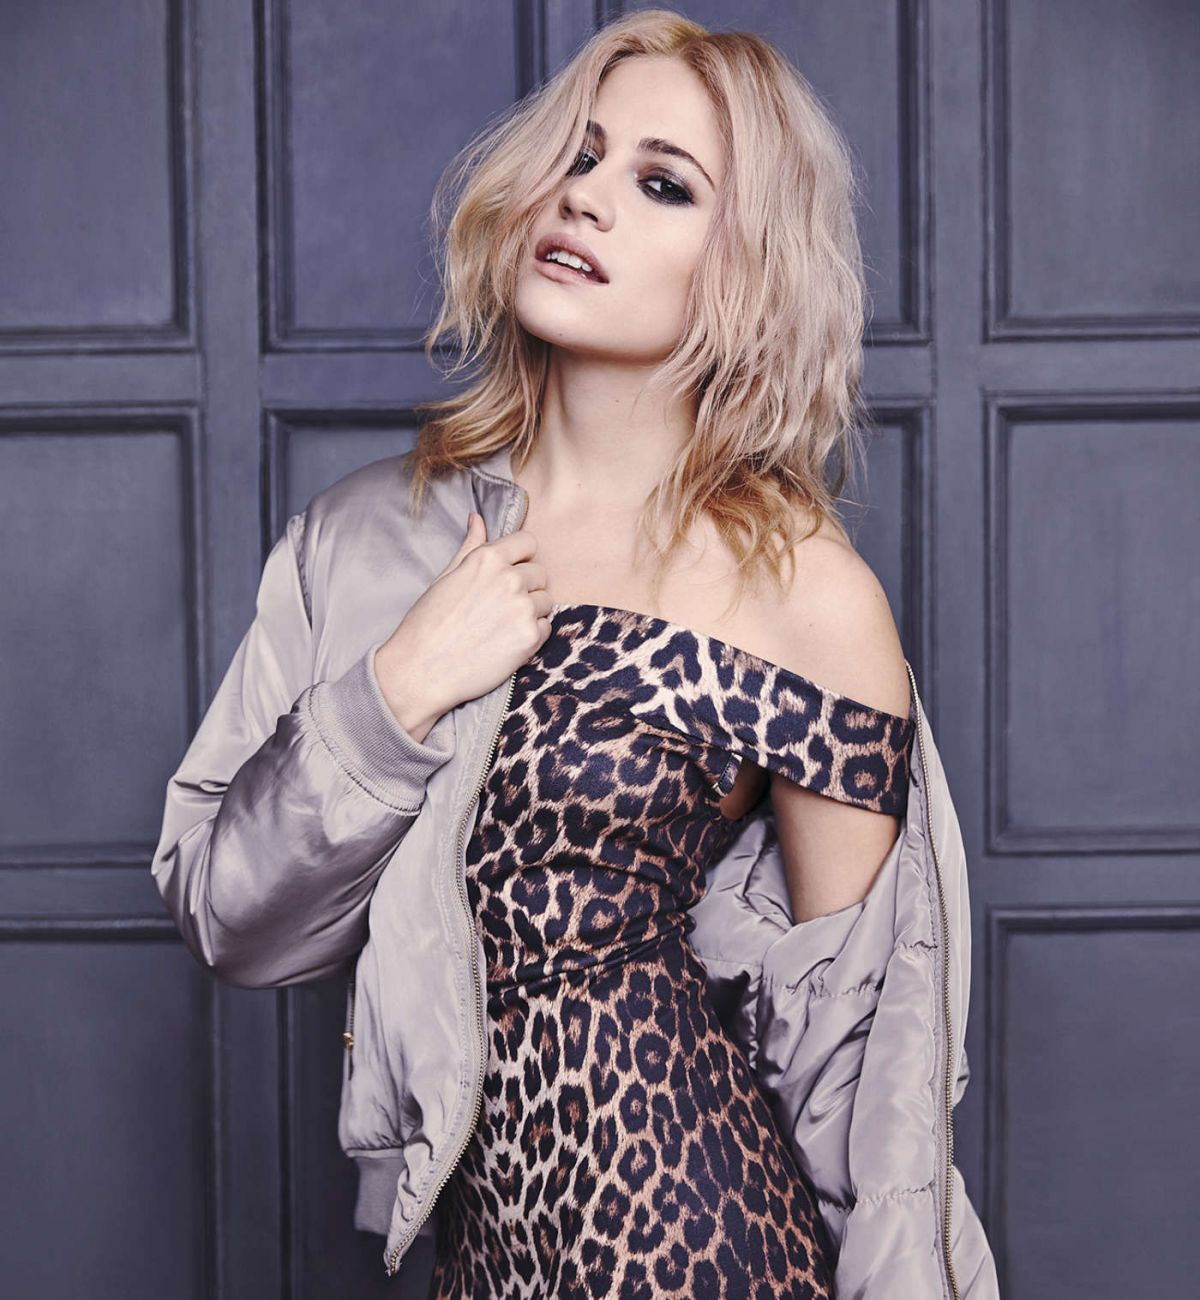 PIXIE LOTT in Fabulous Magazine, Ffebruary 2016 Issue